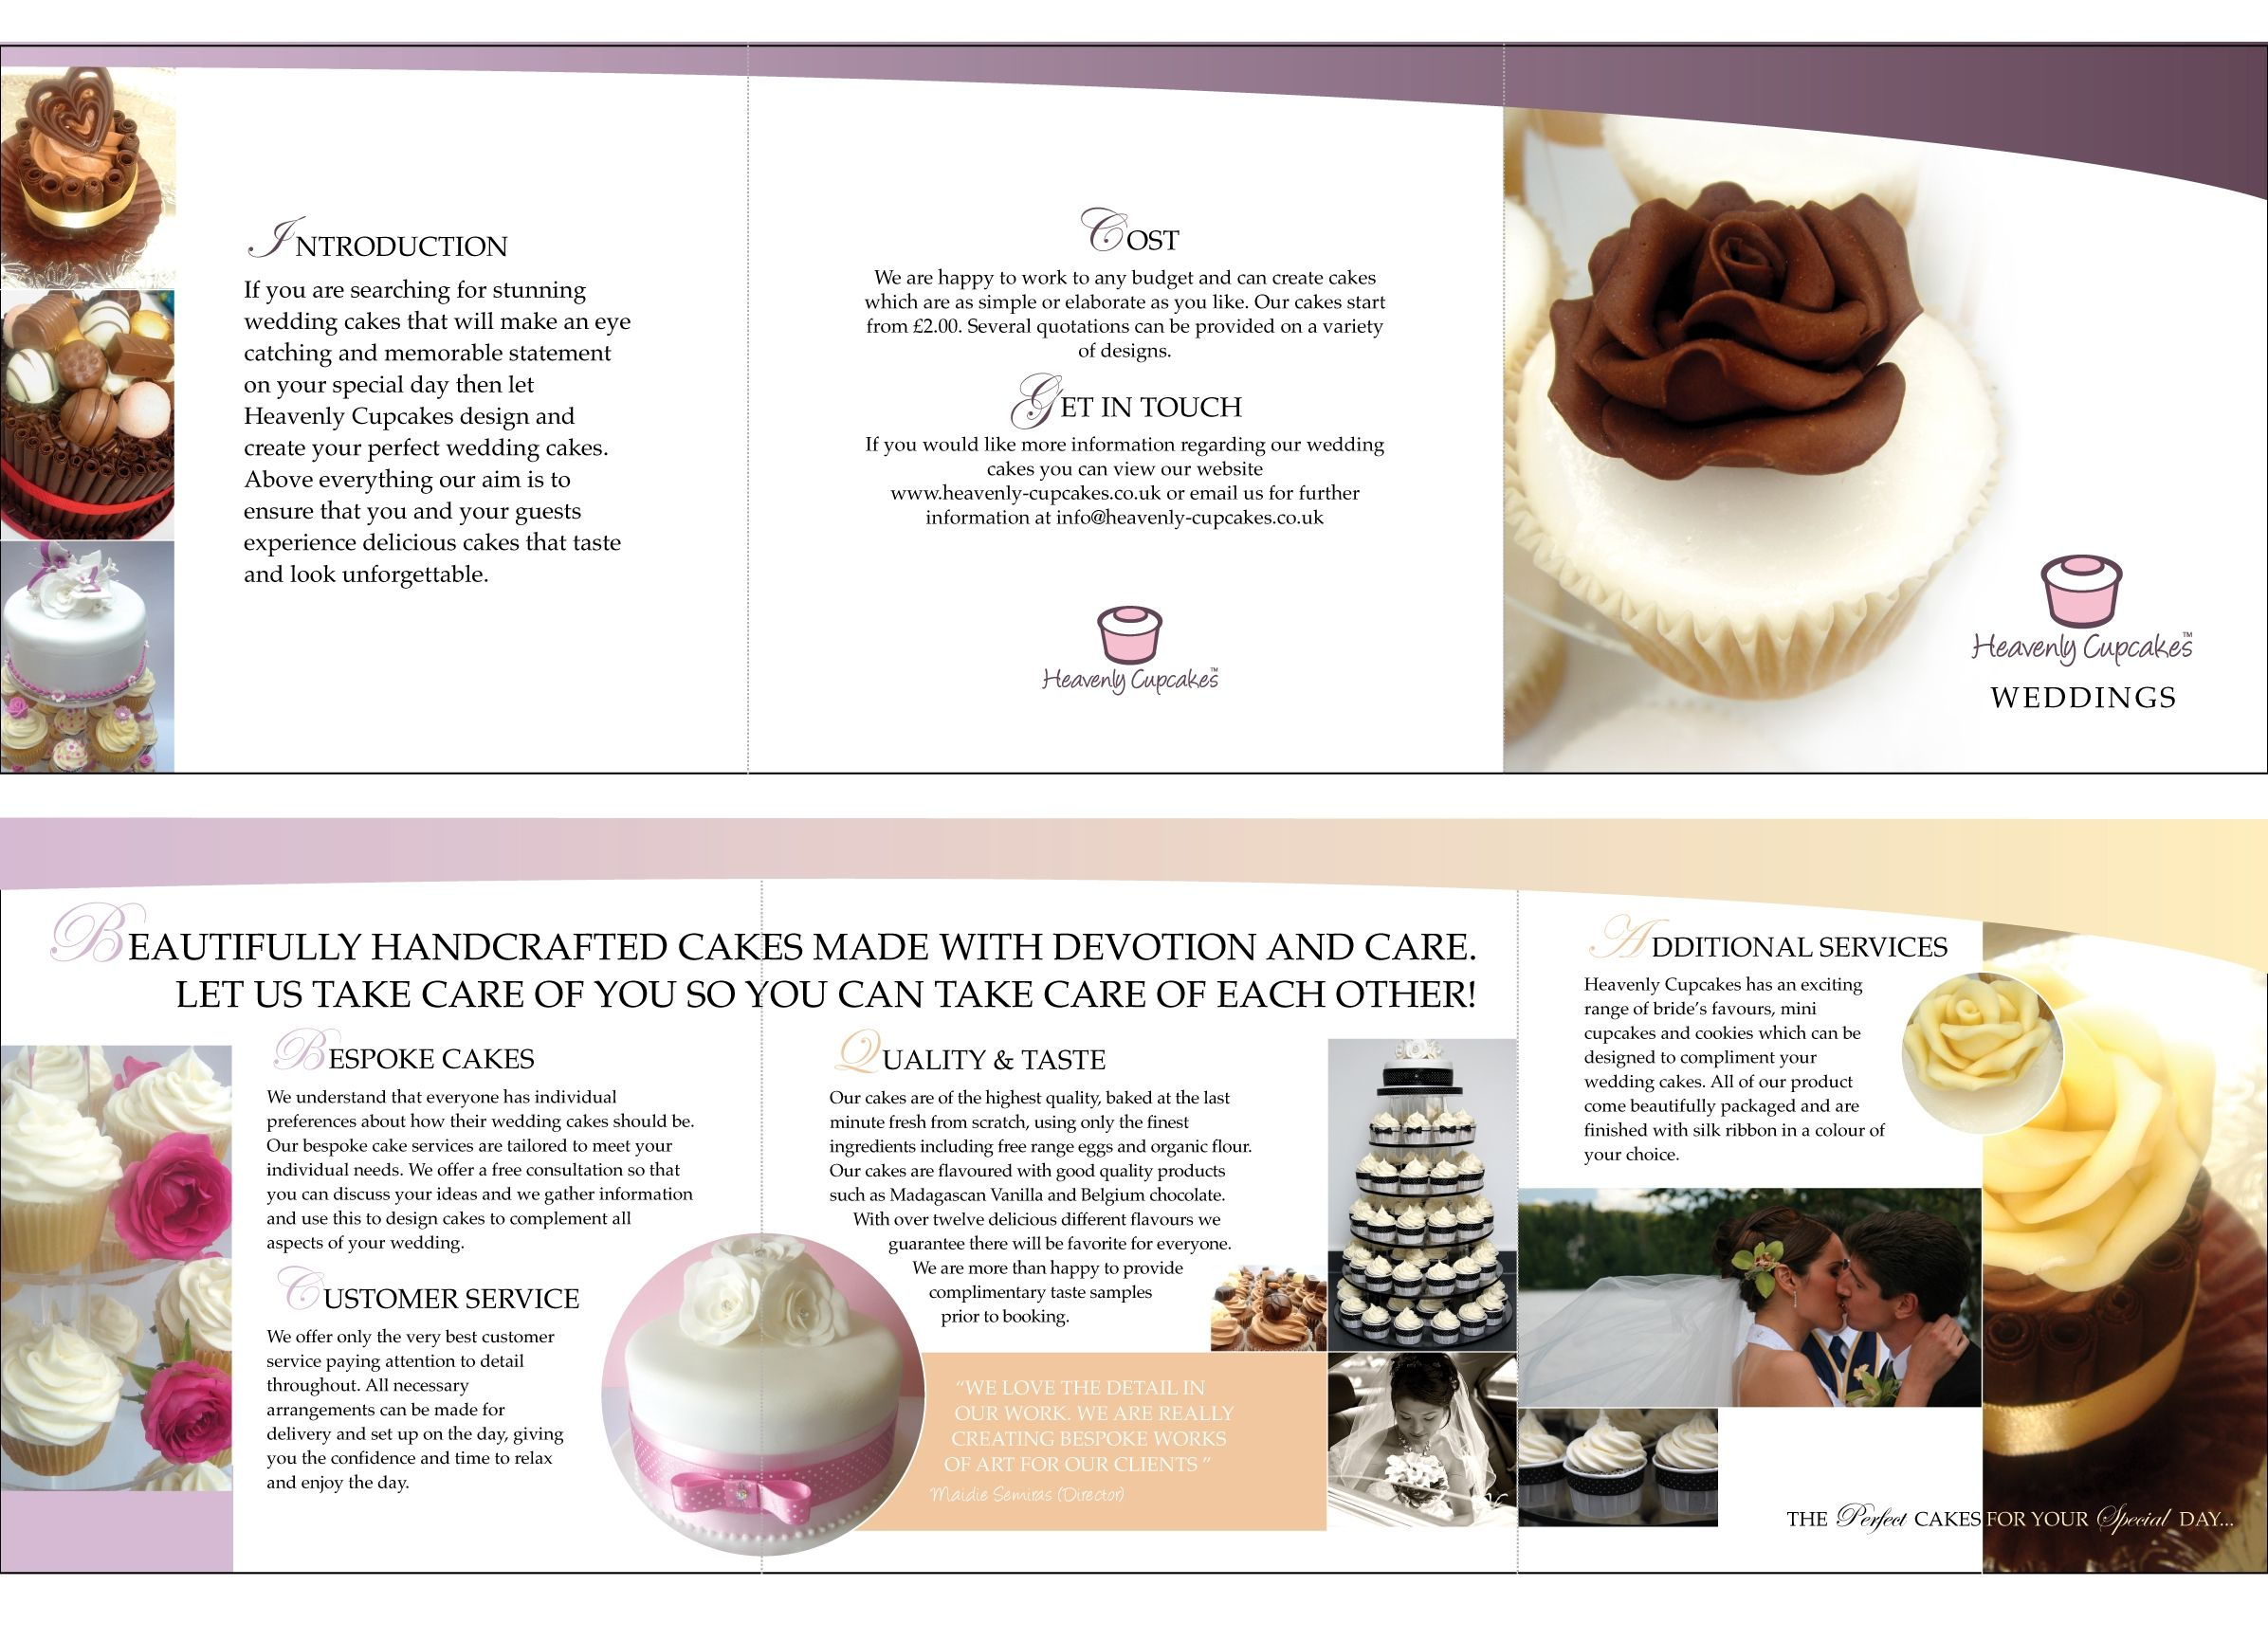 wedding cake brochure templates pin by tarrer on cupcake logo branding 22105